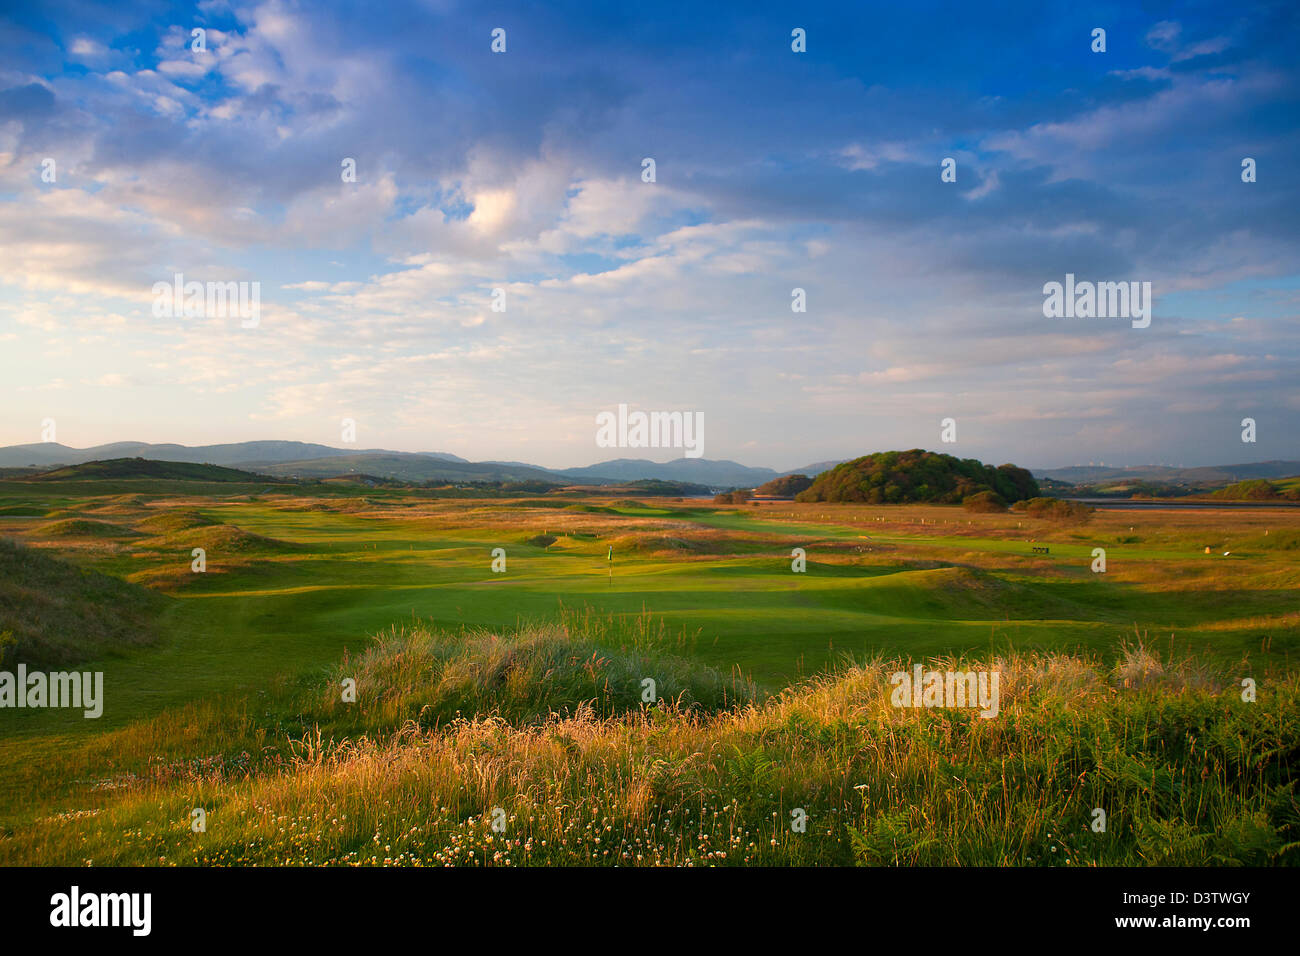 Donegal golf course at sunset, green golf and blue. No people. - Stock Image